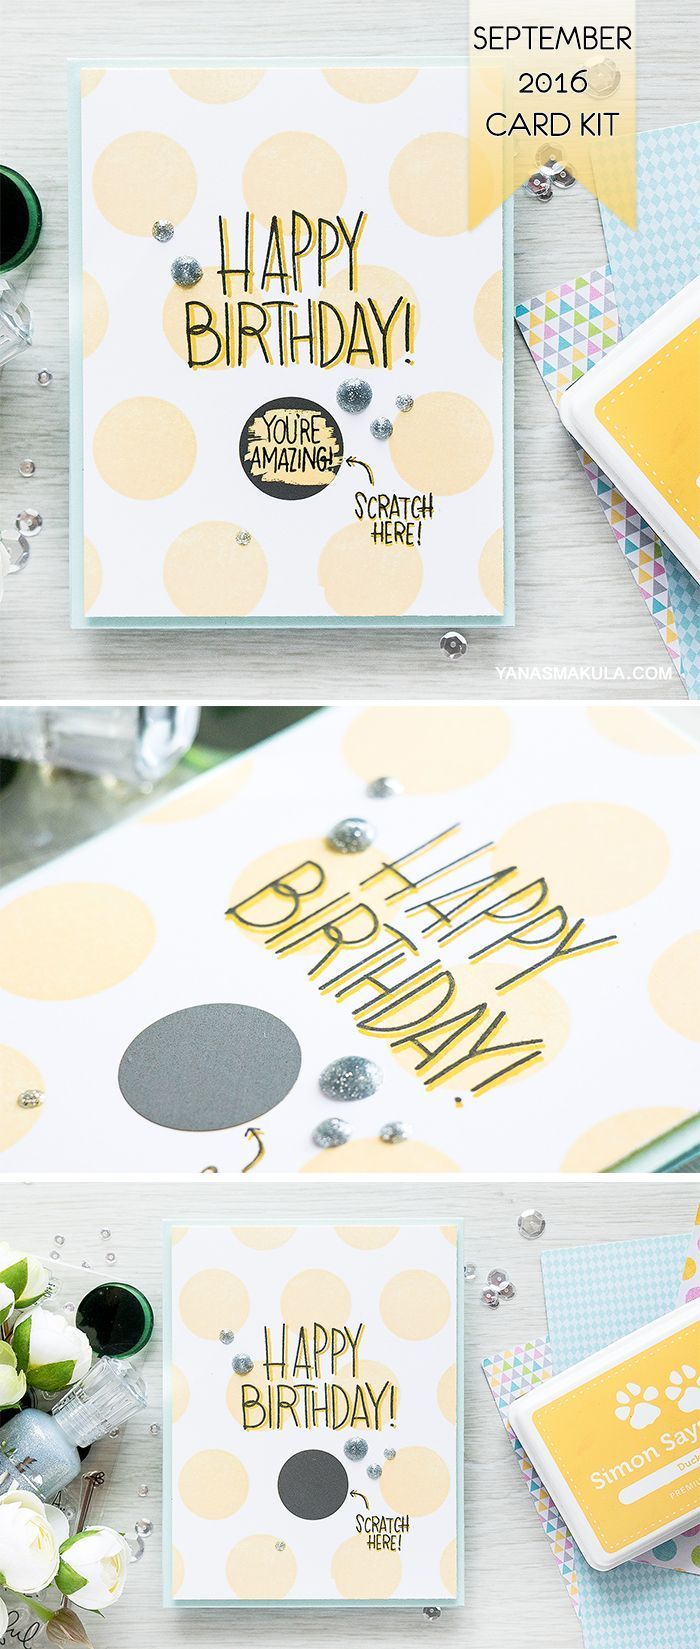 Get creative with Simon Says Stamp September 2016 Card Kit! Simple stamped Birthday card with a hidden message. For details, visit http://www.yanasmakula.com/?p=54836